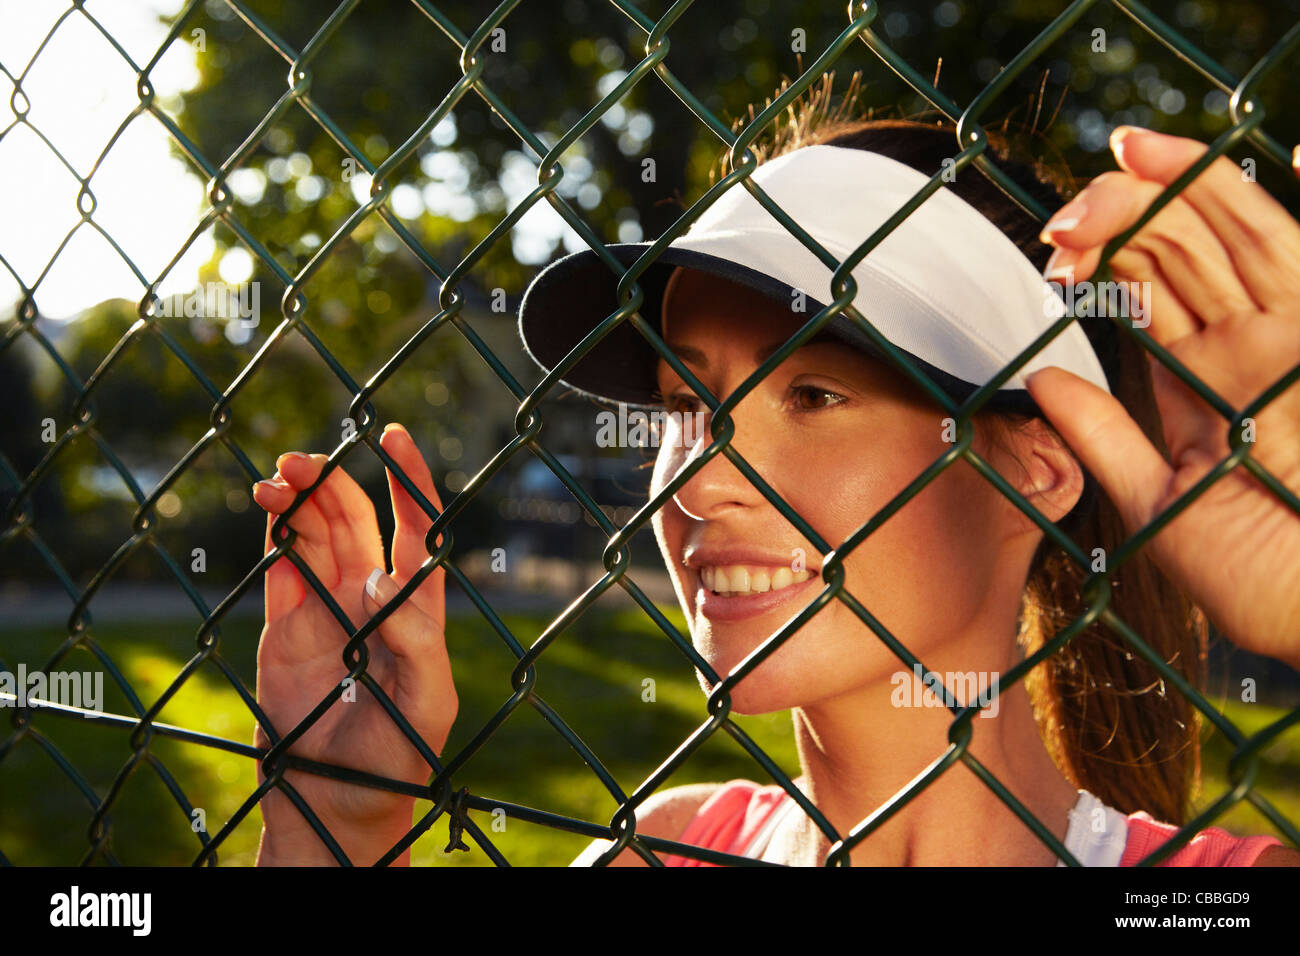 Woman peering through chain link fence - Stock Image